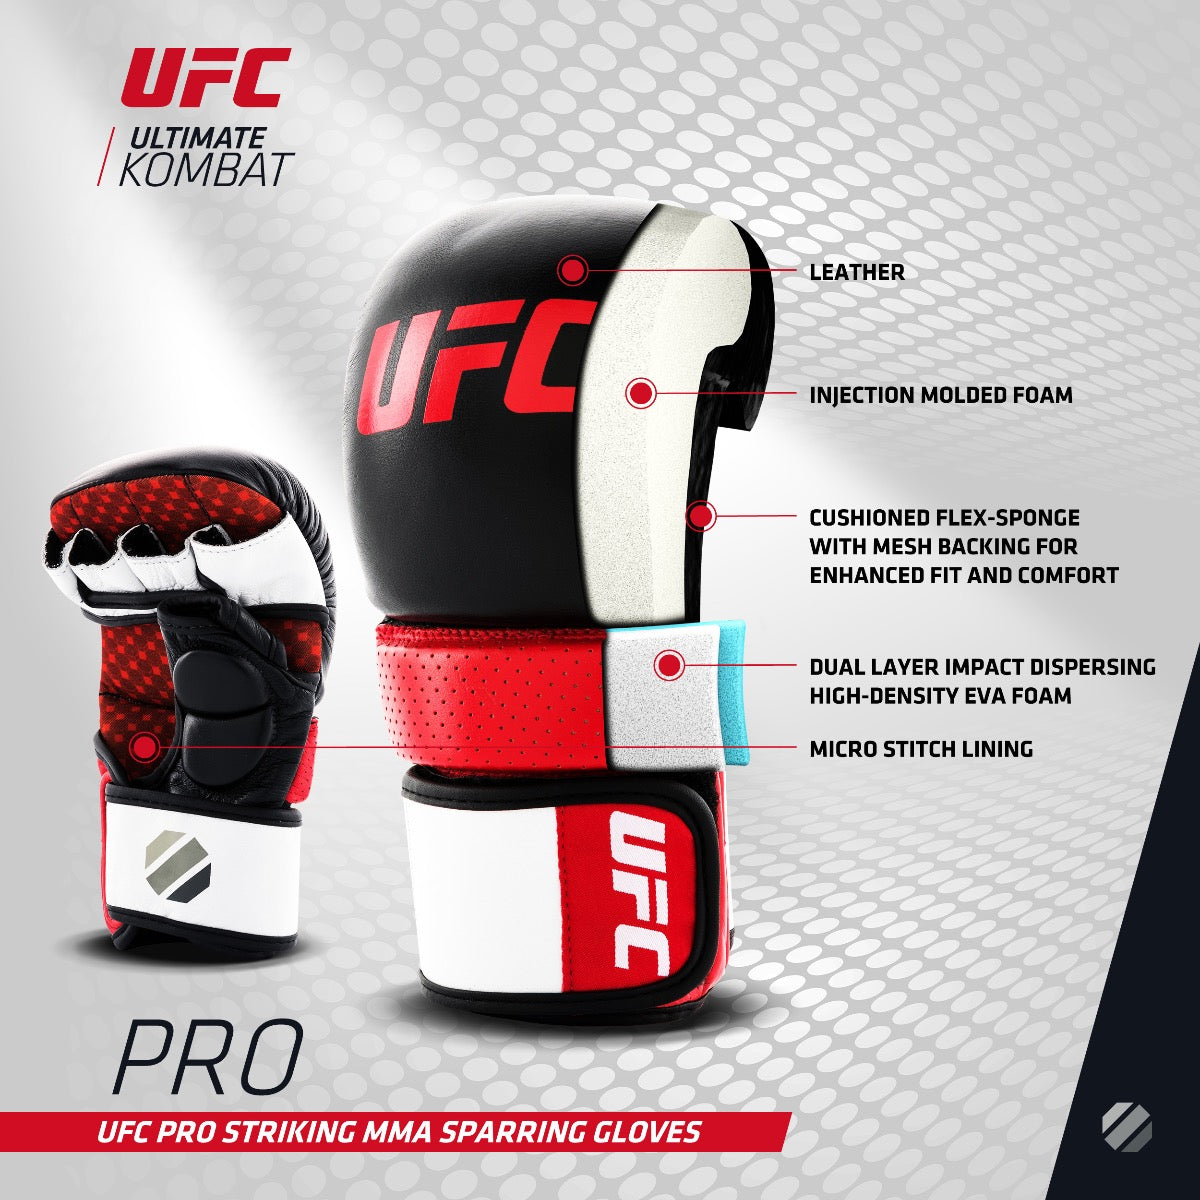 Cross-section diagram of the features of the UFC Pro MMA Sparring Gloves